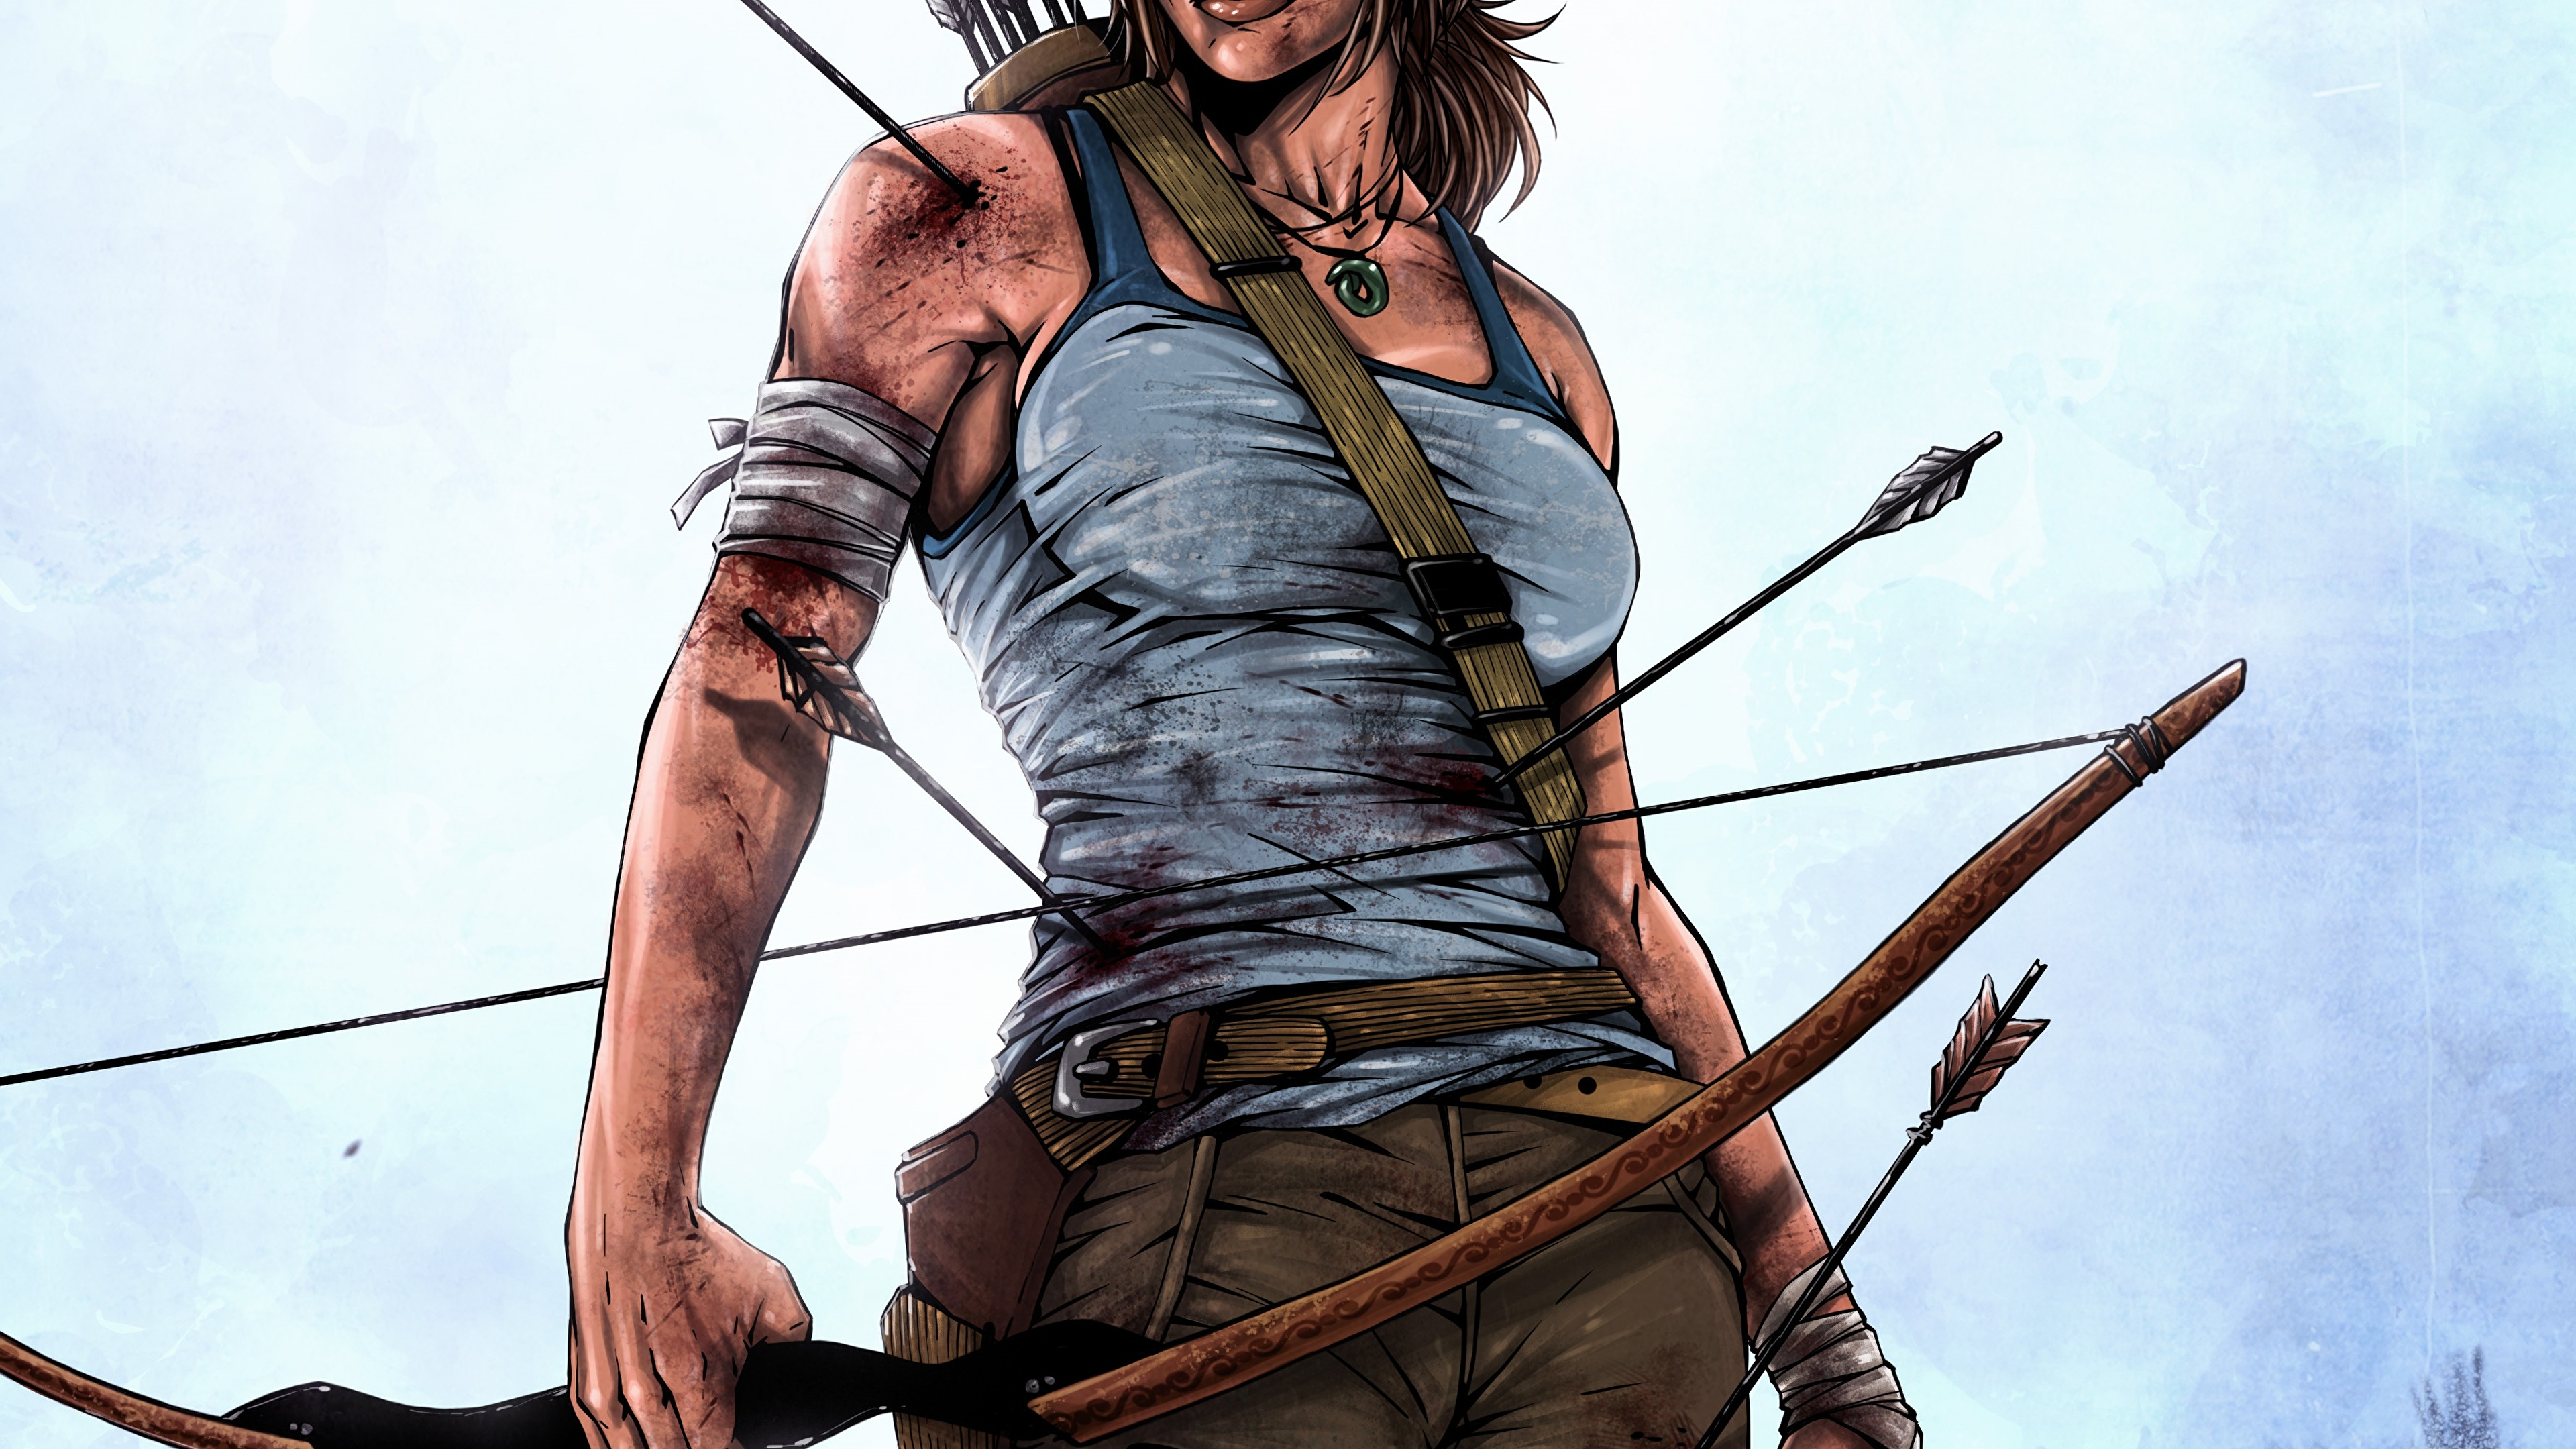 Photos Tomb Raider 2013 Lara Croft Bow Weapon Arrows Girls 3840x2160